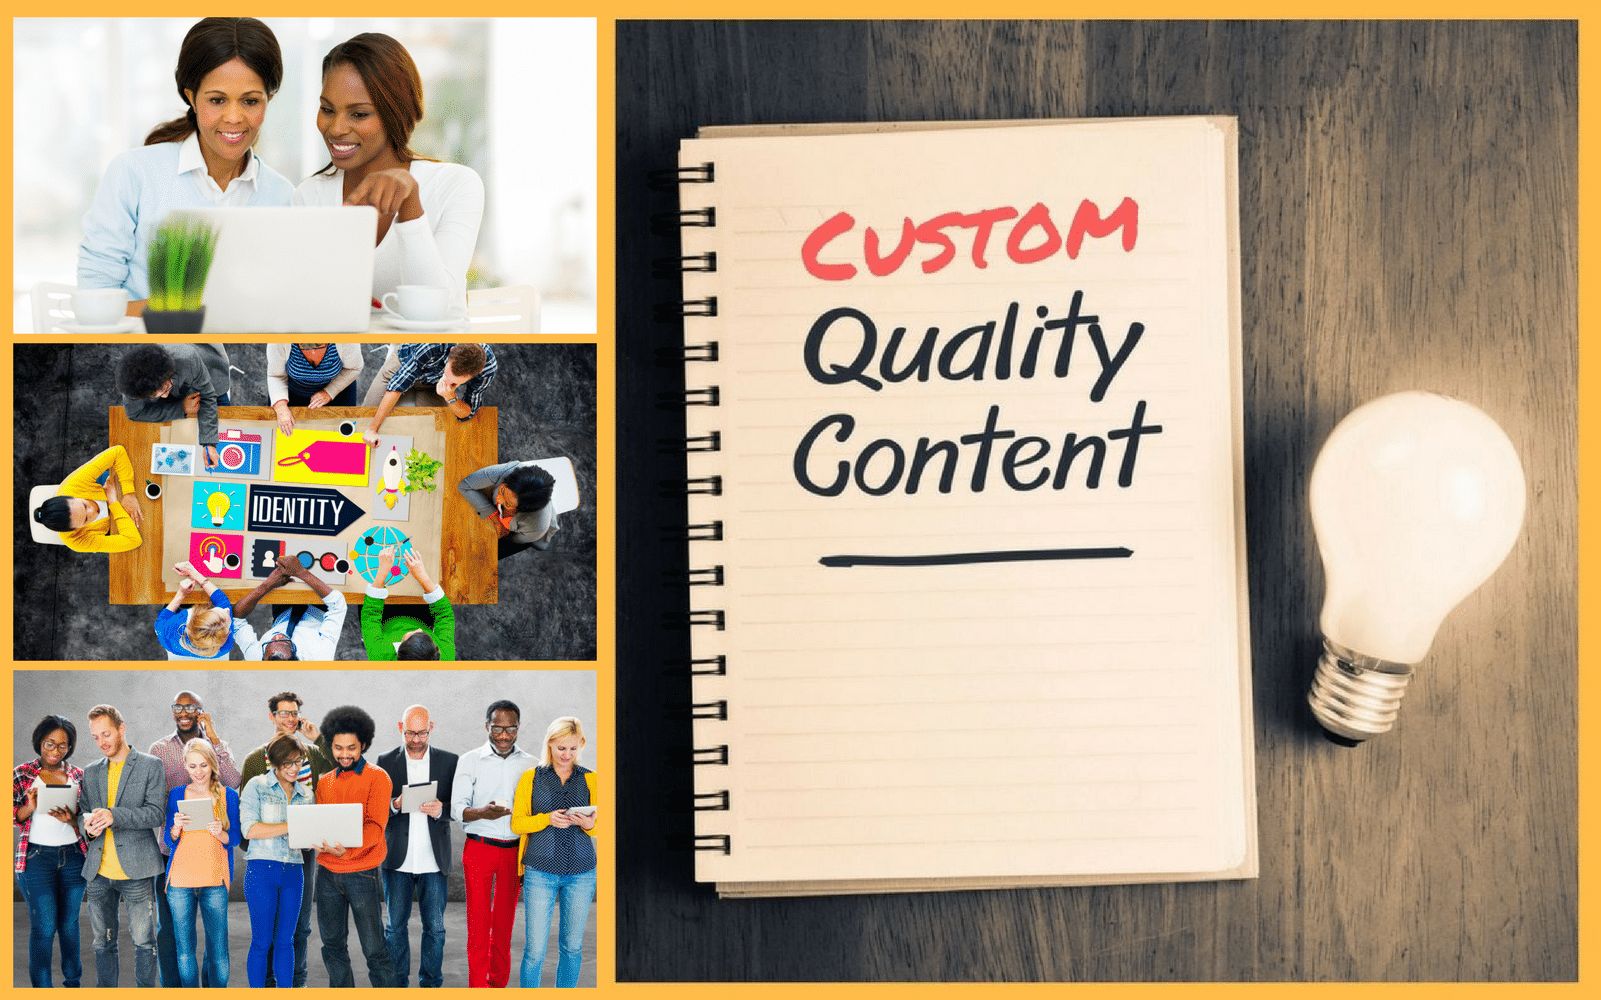 Custom Quality Content – Why Is It So Important?